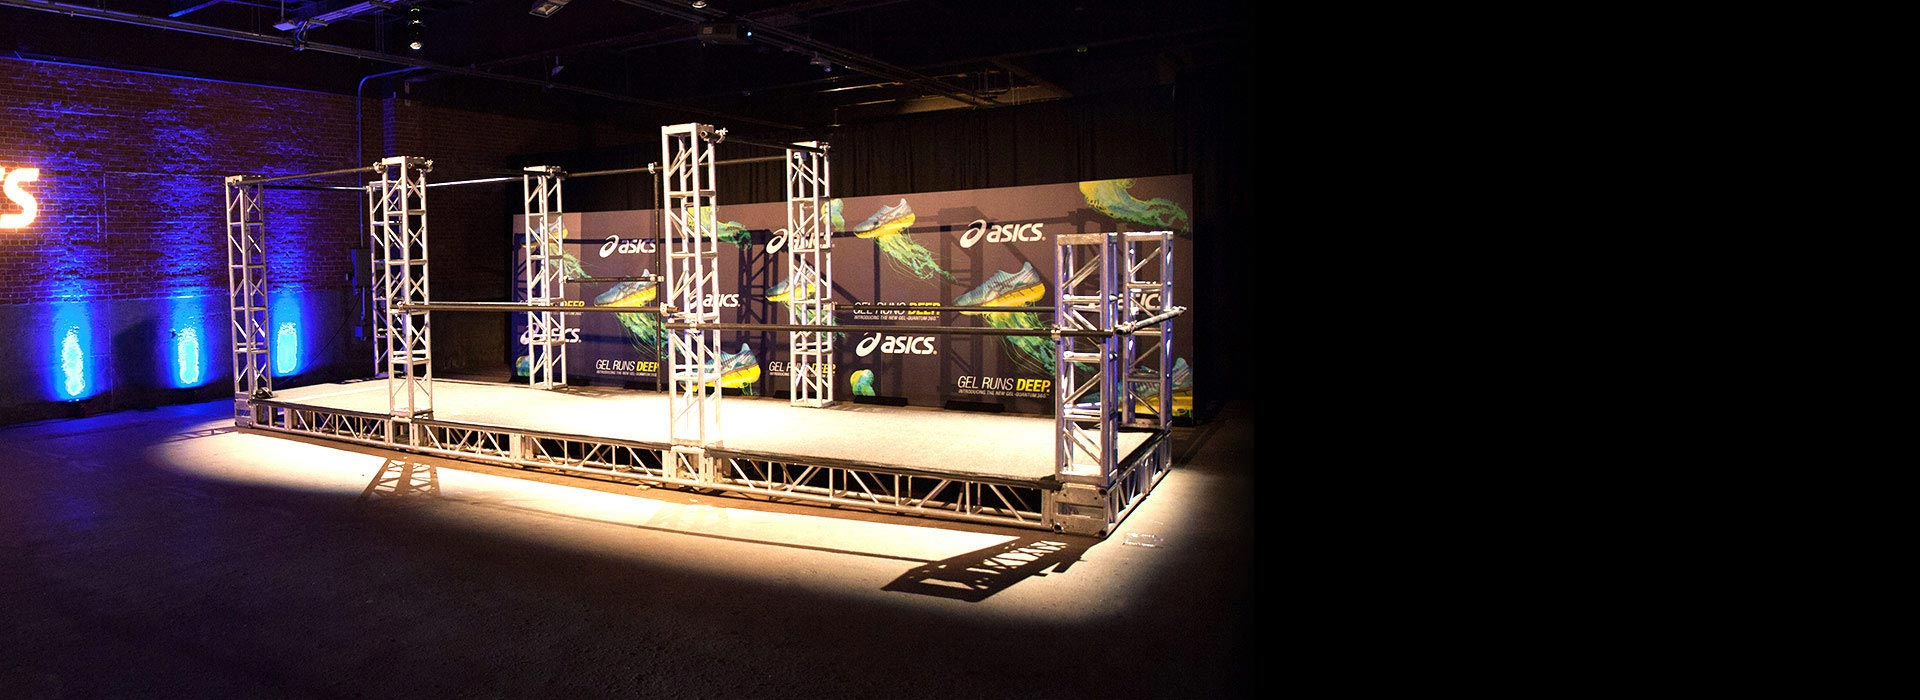 asics parkour demo sneakers displays engagement custom fabricated dinner event design